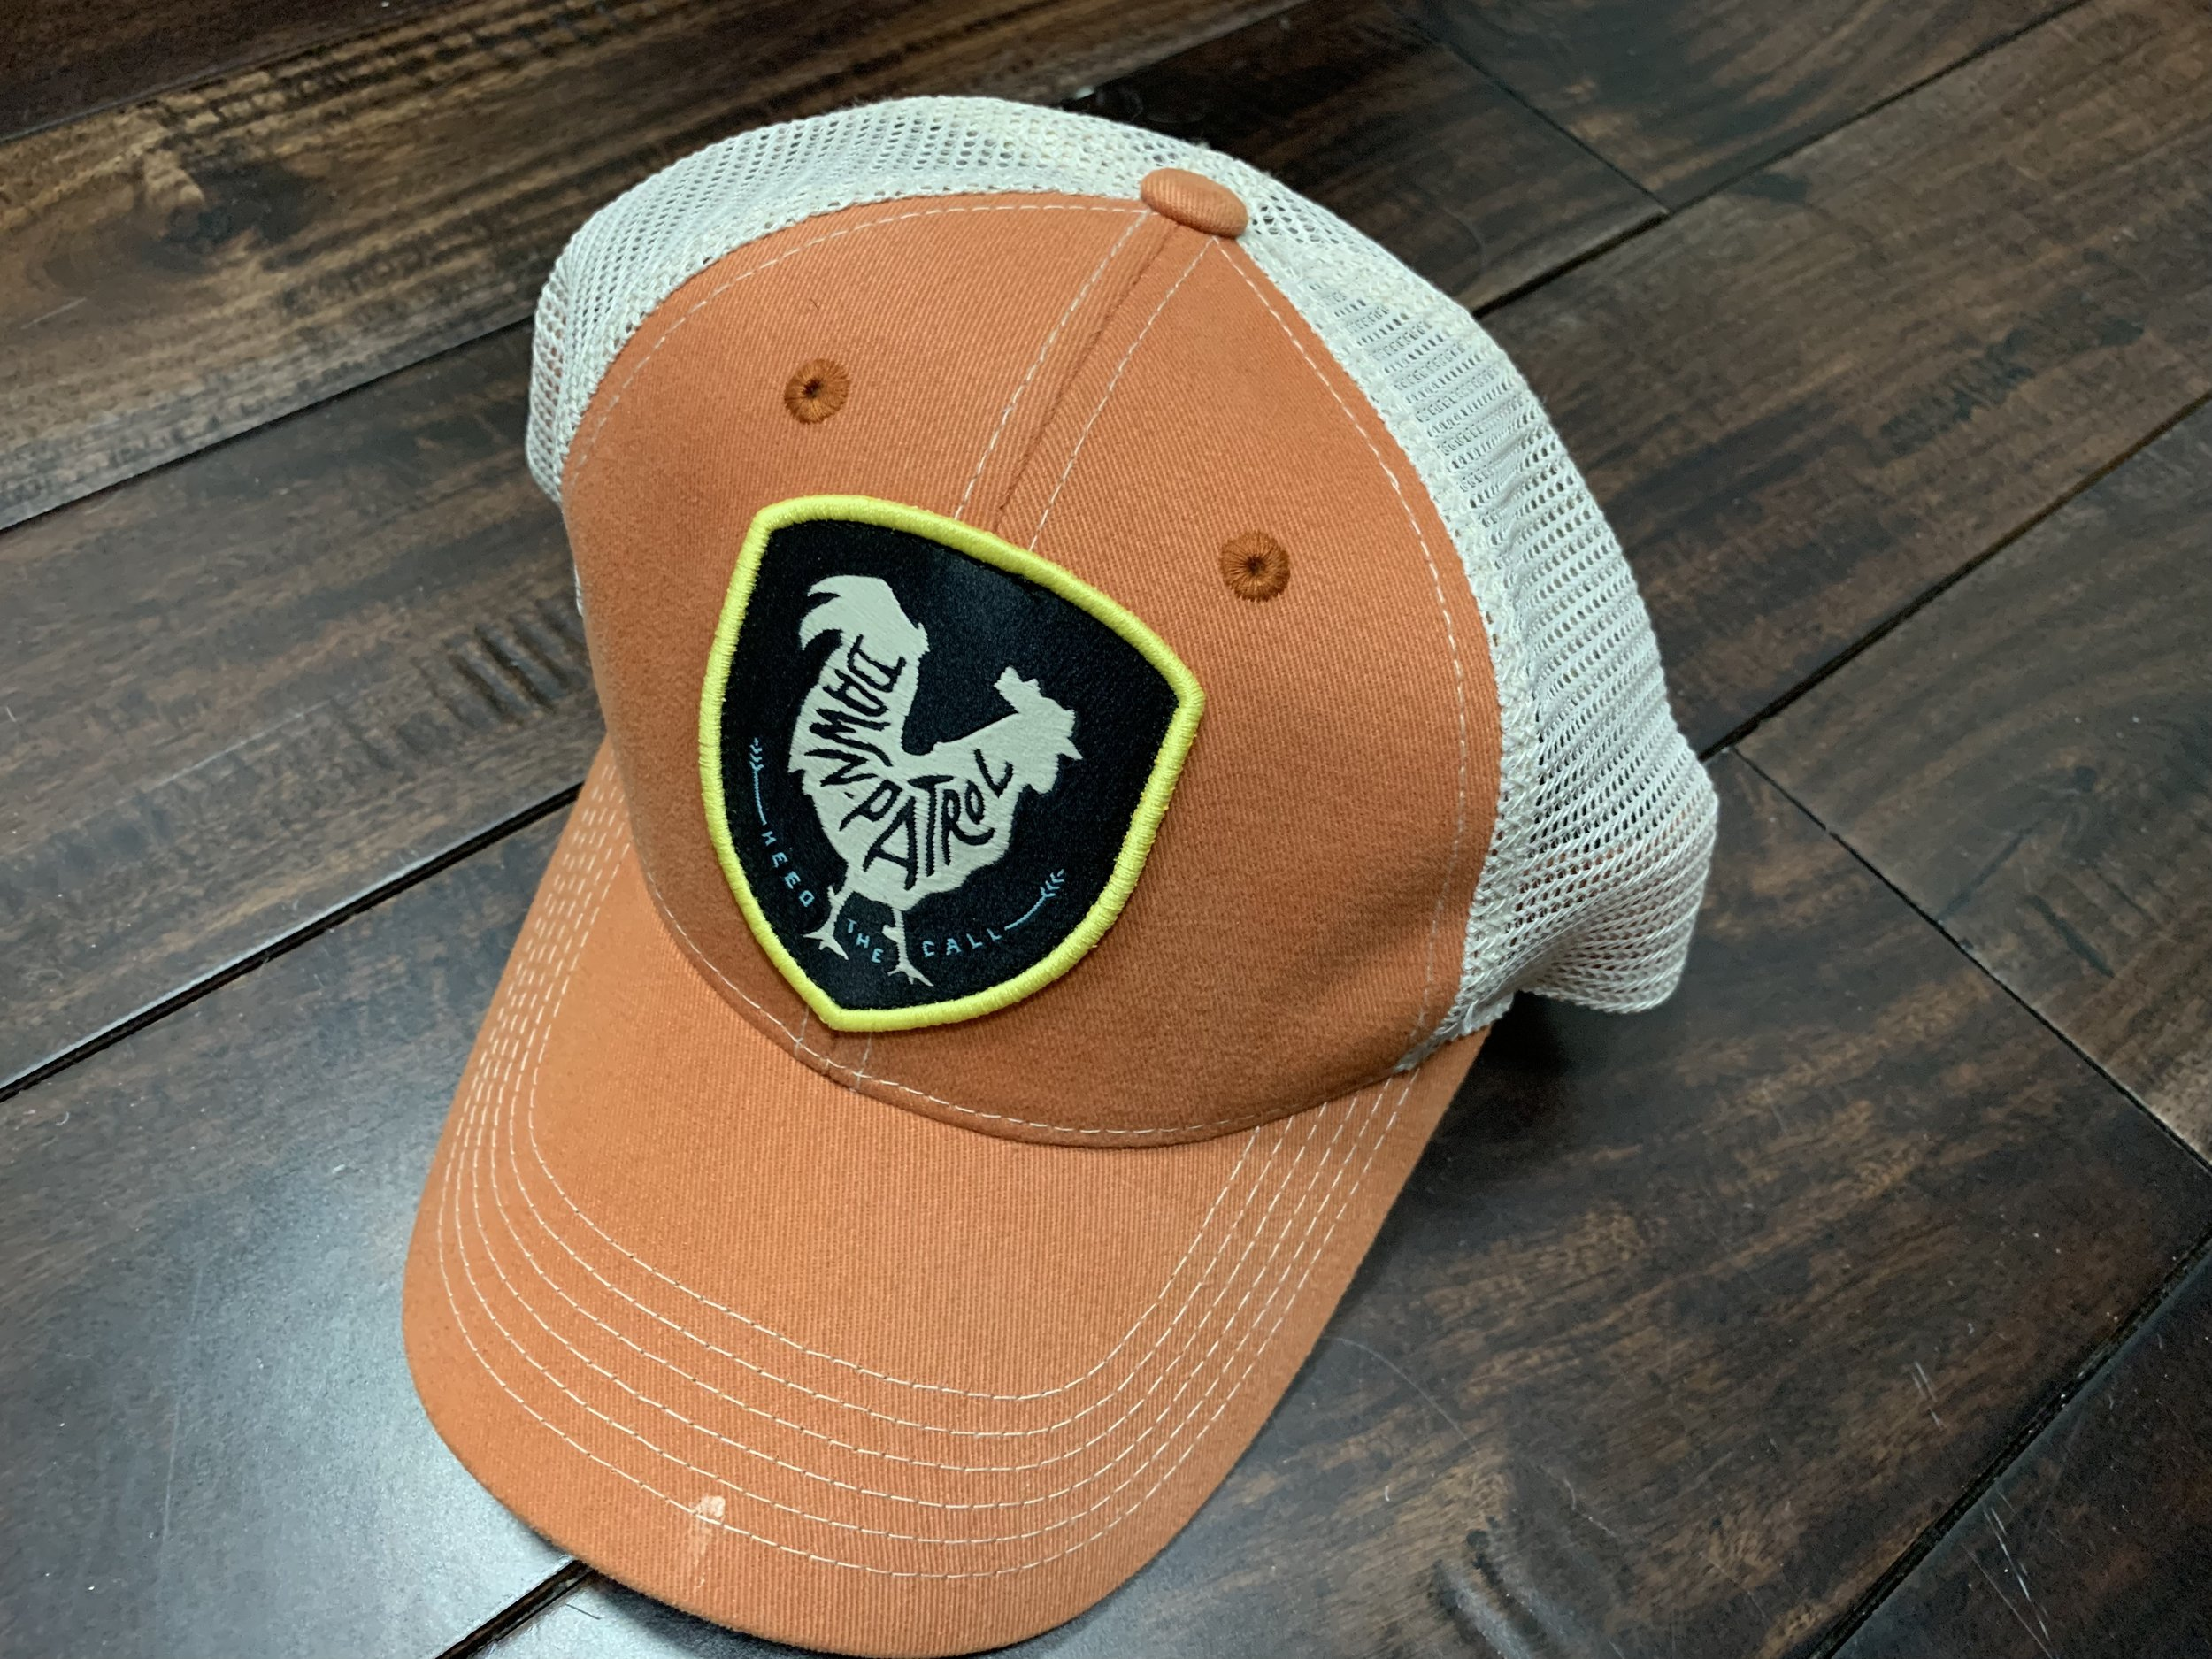 P.S. Someone bought this hat. The patch represents the group of surfers who surf at dawn in Costa Rica. No one in our family surfs at dawn in Costa Rica. I'm just saying.